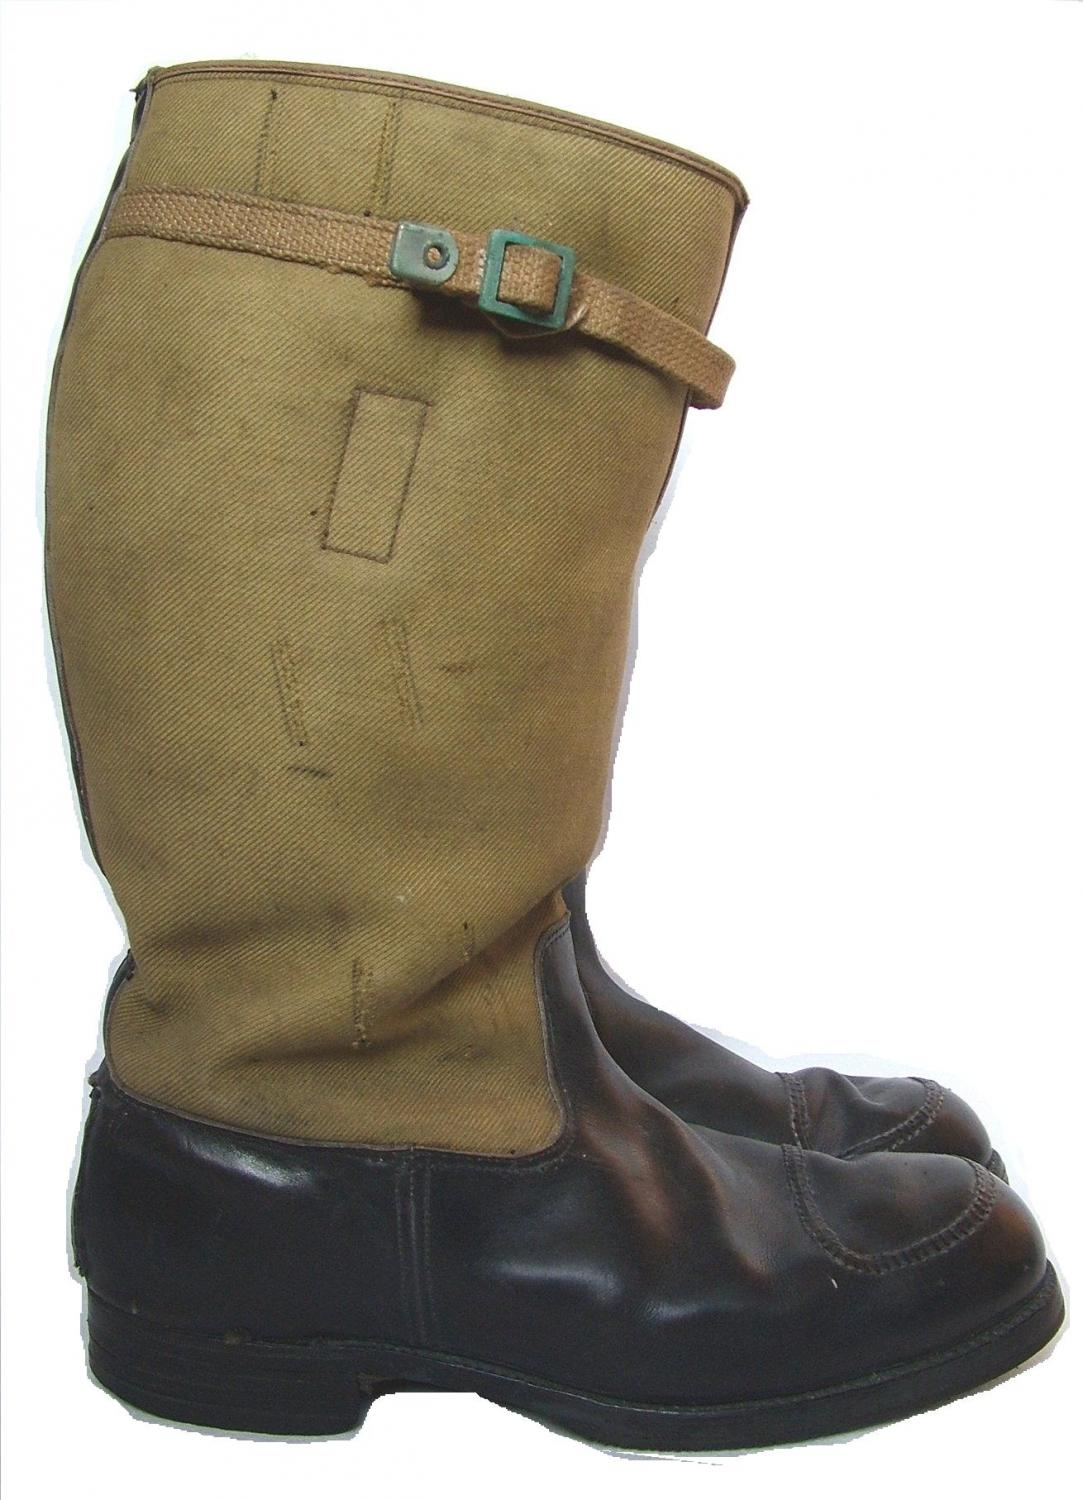 RAF 1939 Pattern Flying Boots - Modified